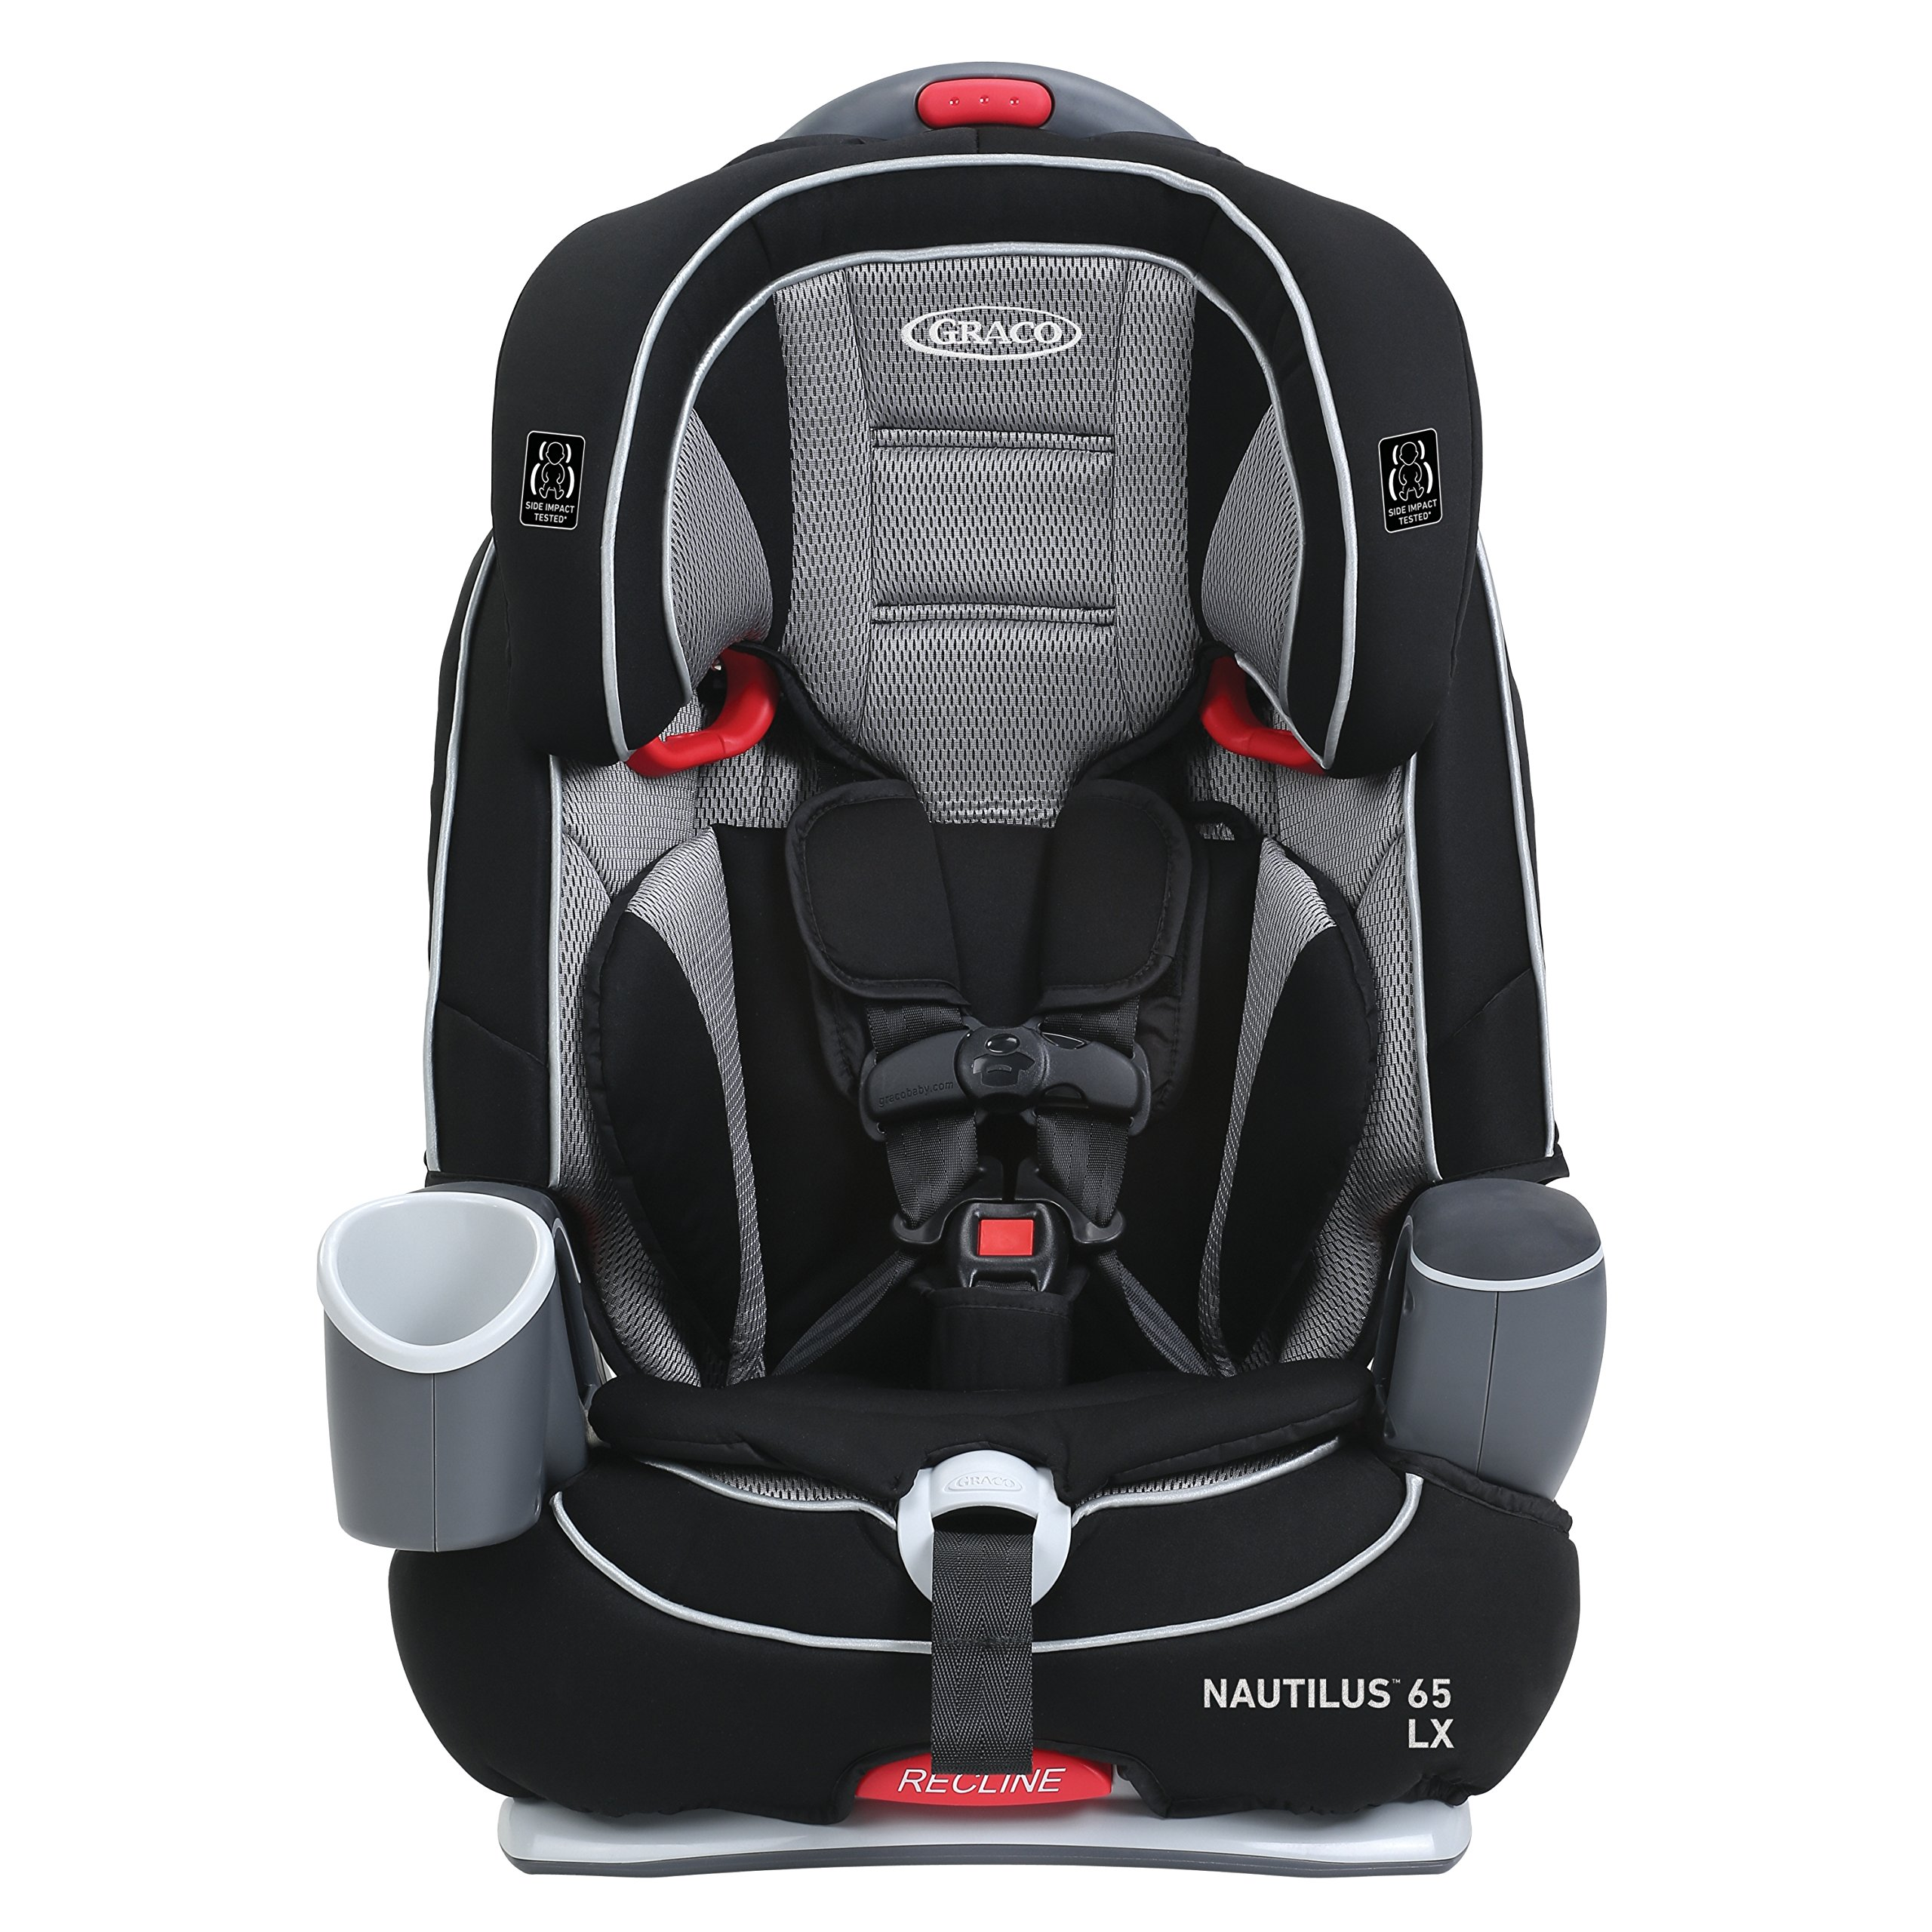 graco nautilus 65 lx 3 in 1 harness booster matrix us. Black Bedroom Furniture Sets. Home Design Ideas